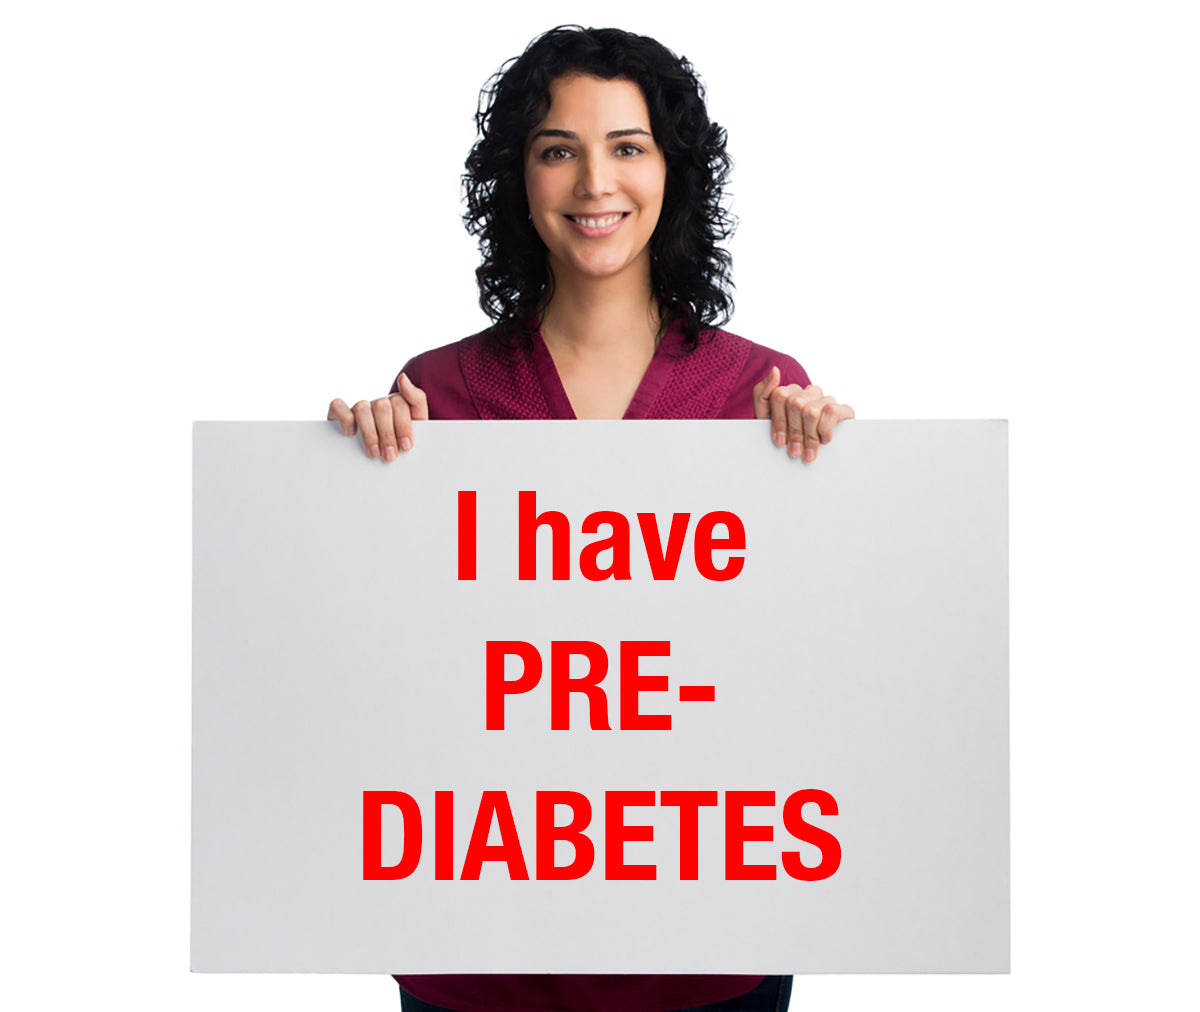 PRE-DIABETES – What You Need to Know